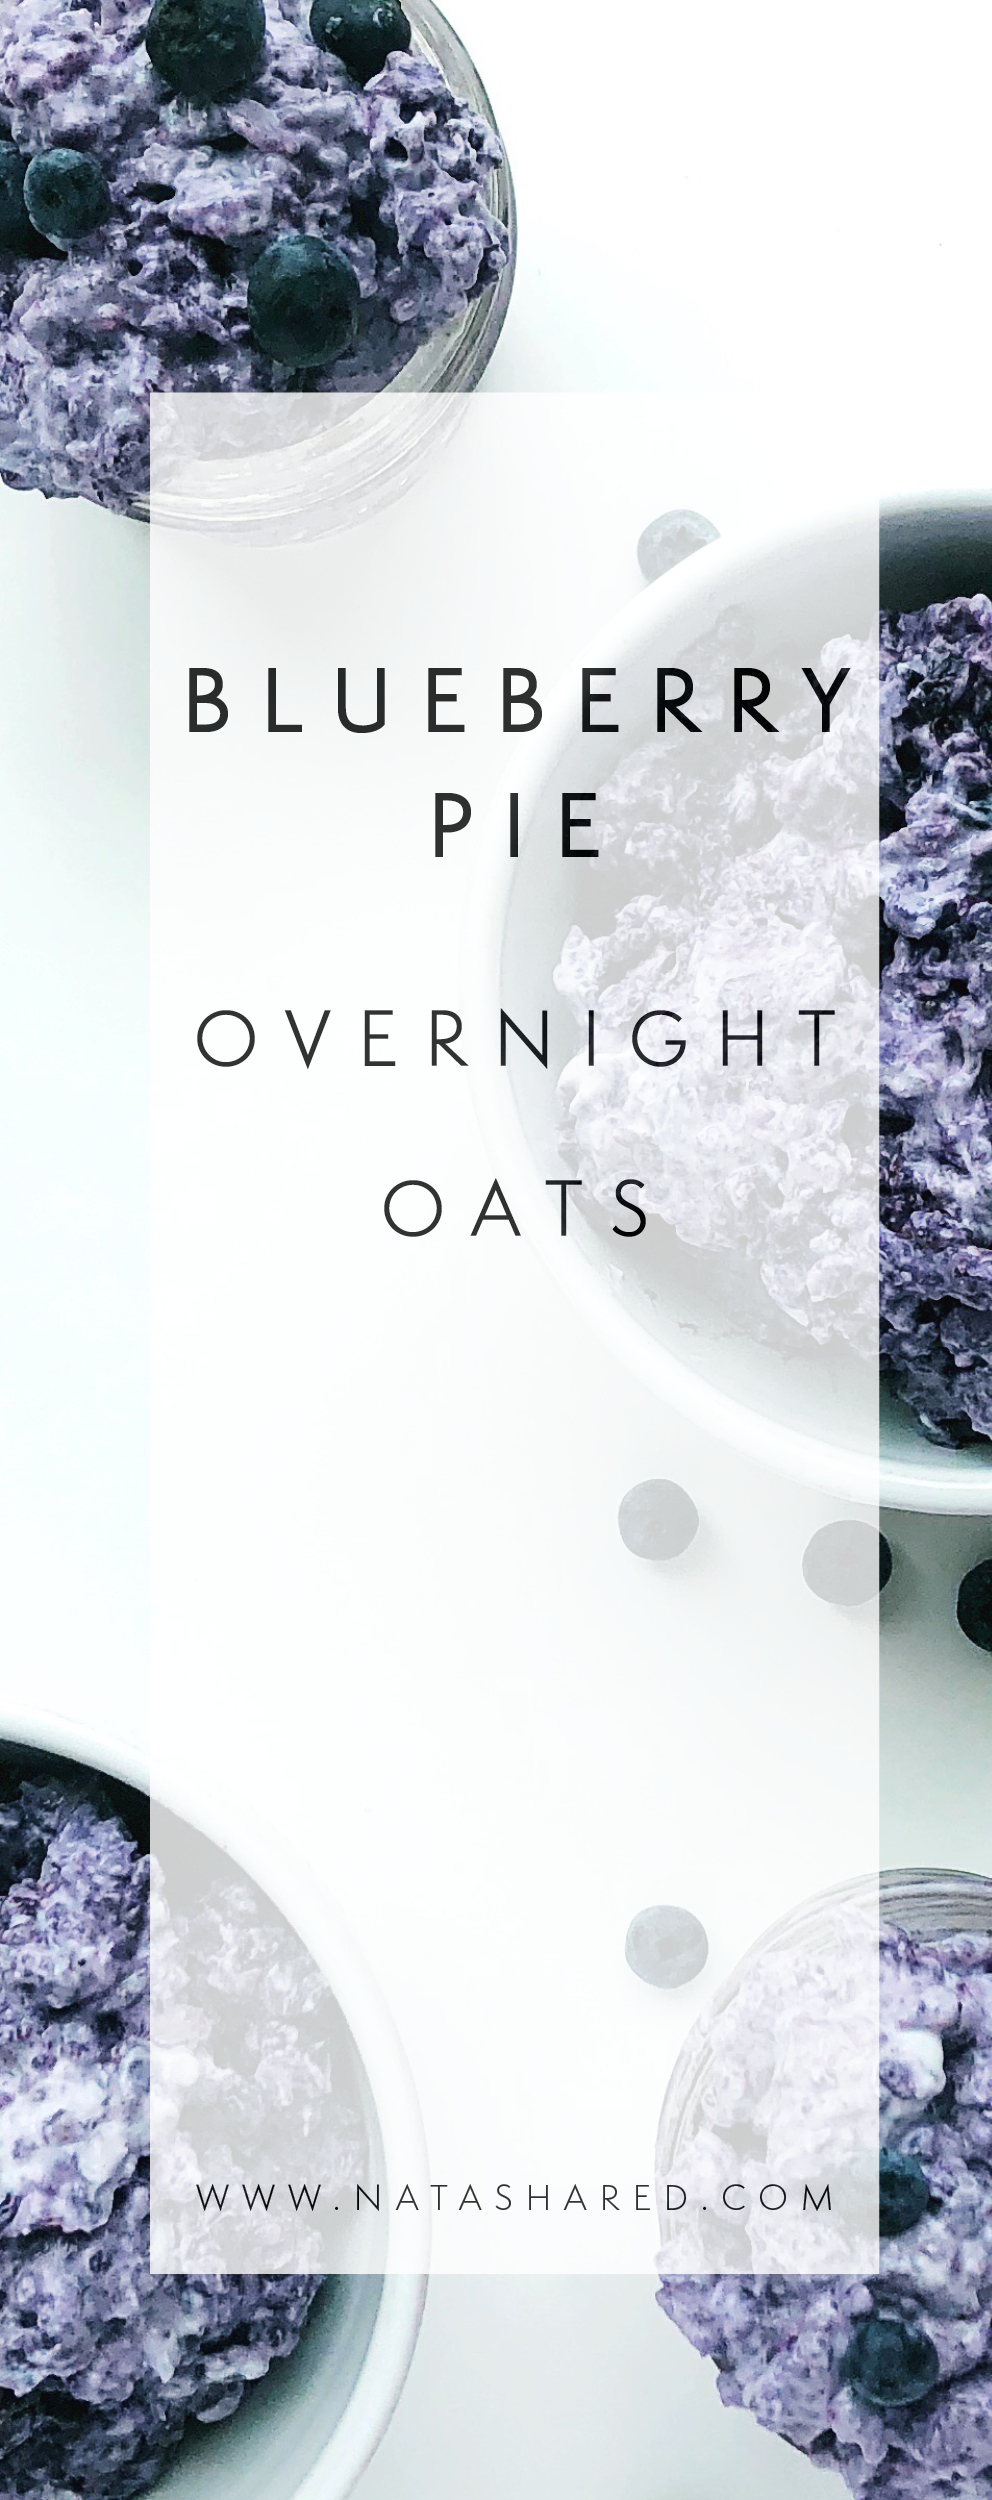 Blueberry Pie Overnight Oats | Overnight Oats Club